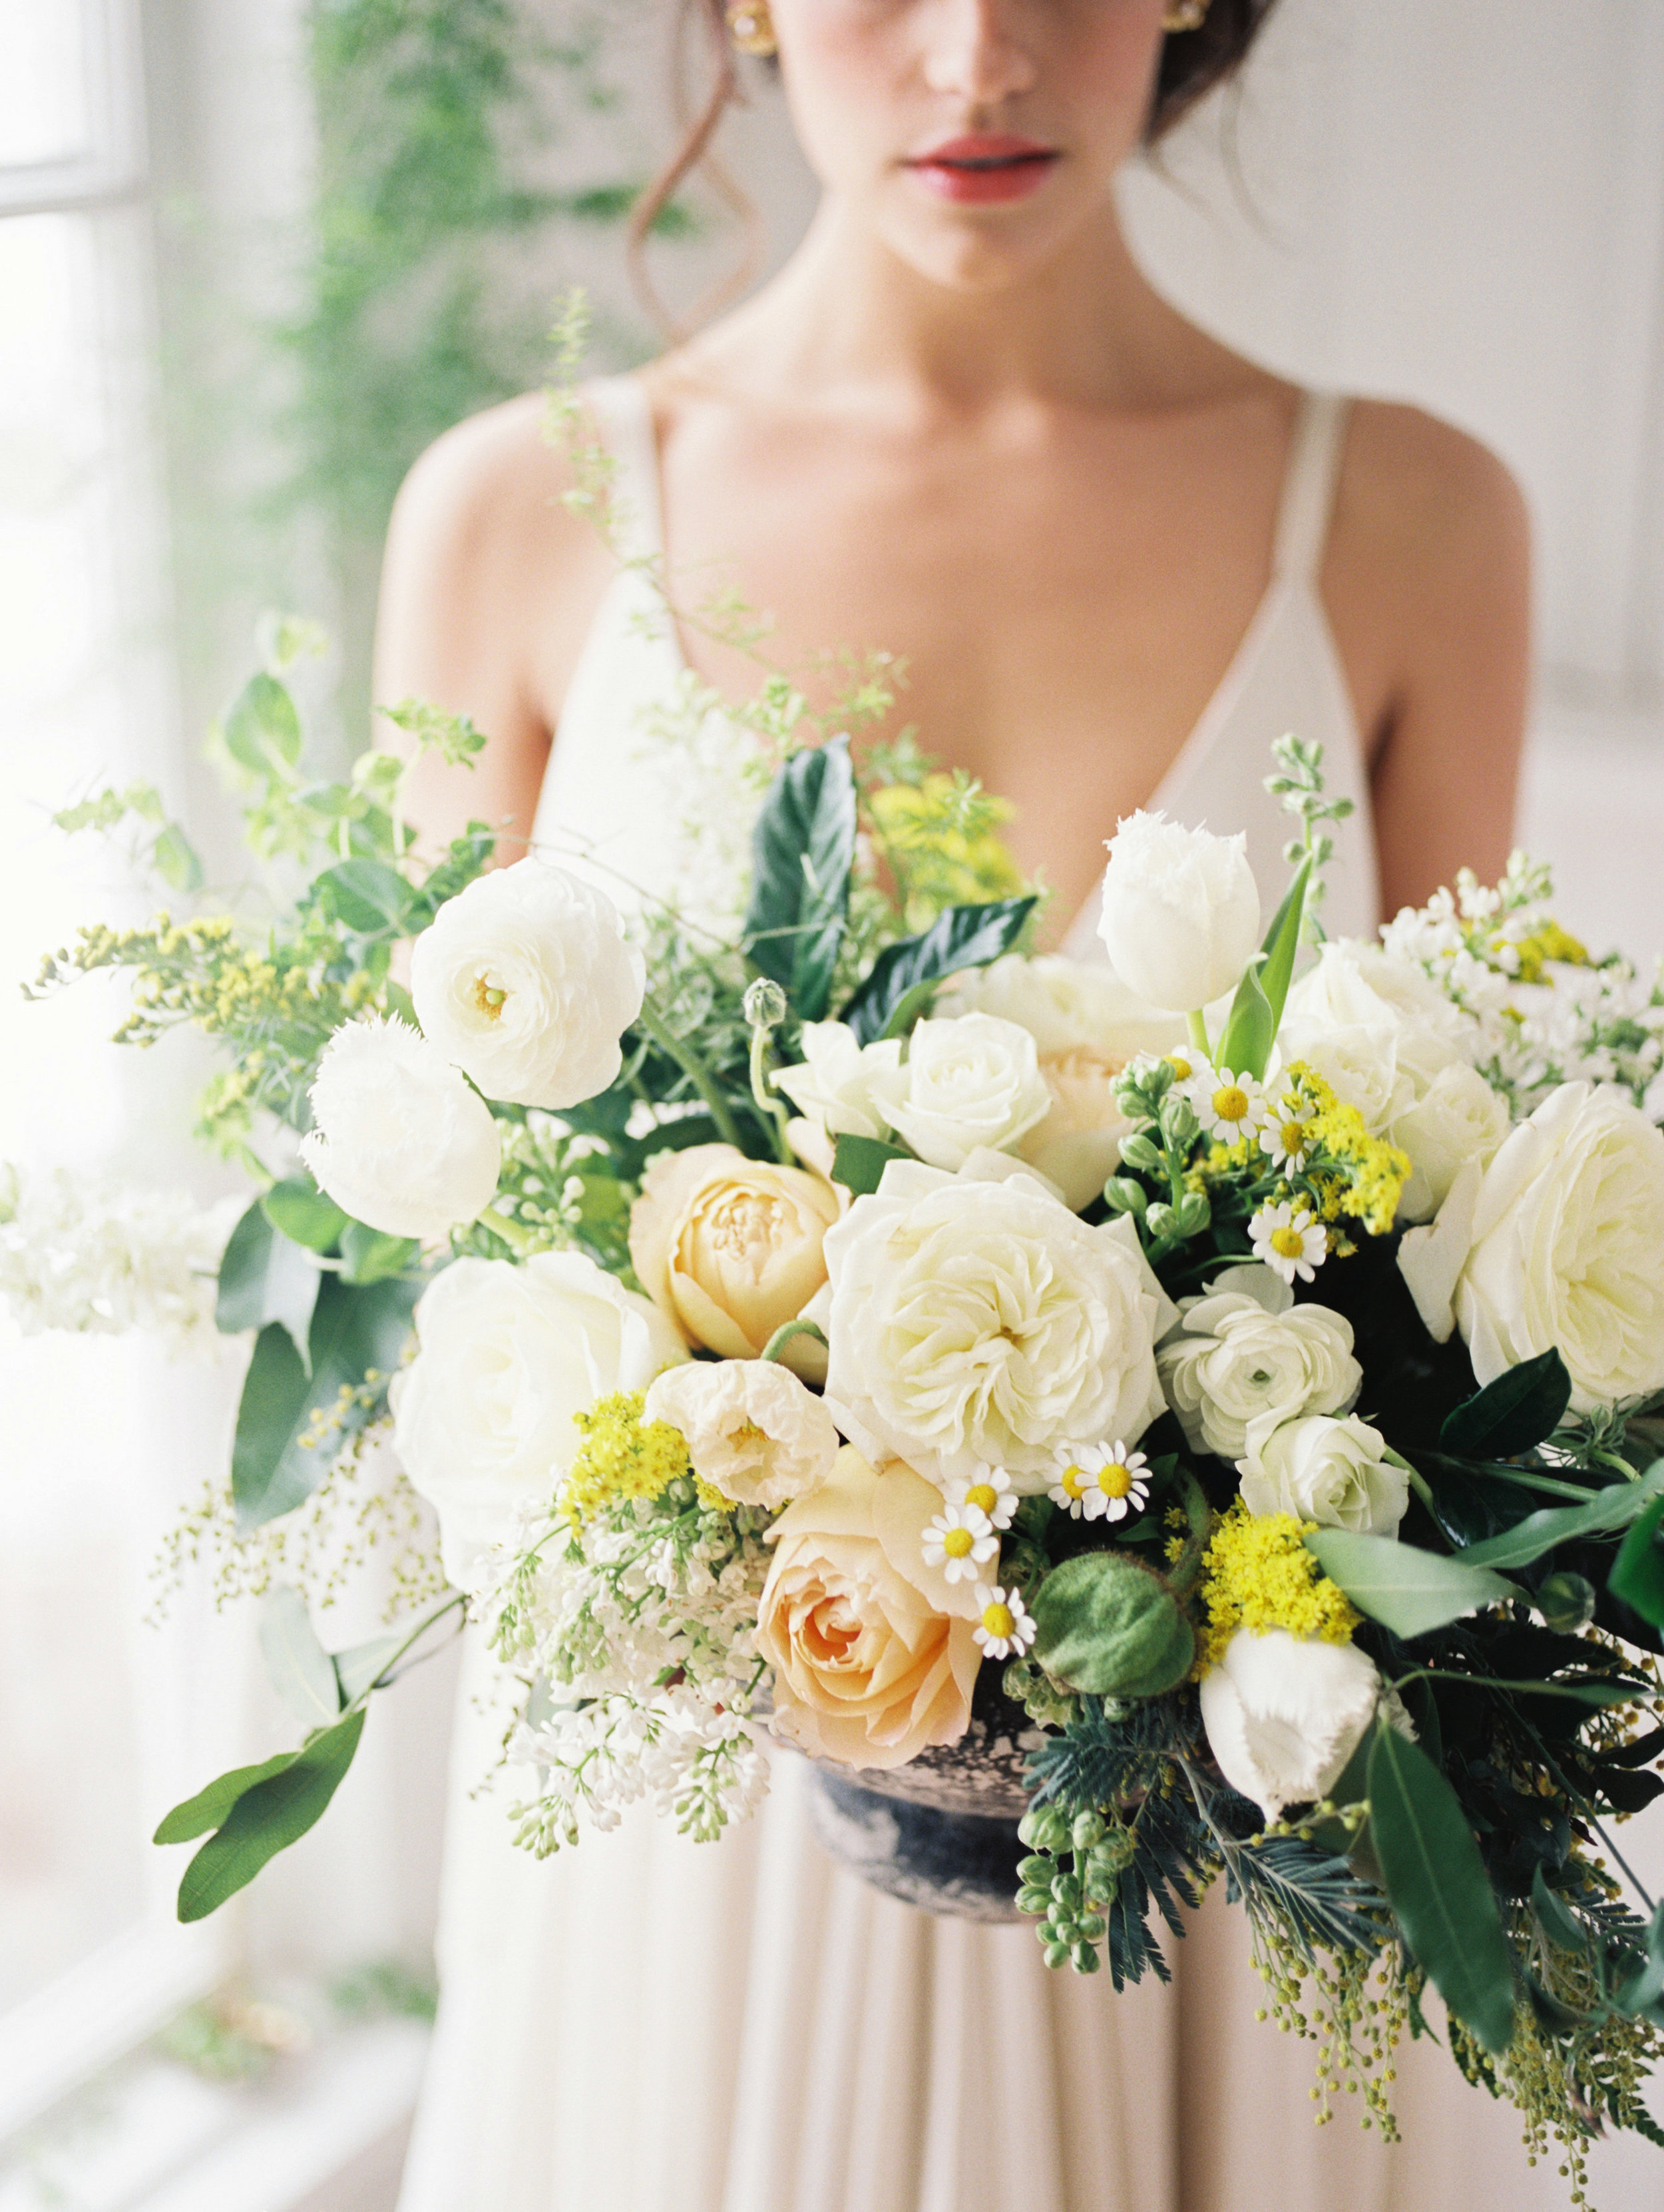 yellow and white wedding flowers for wisconsin wedding by foraged floral.jpg